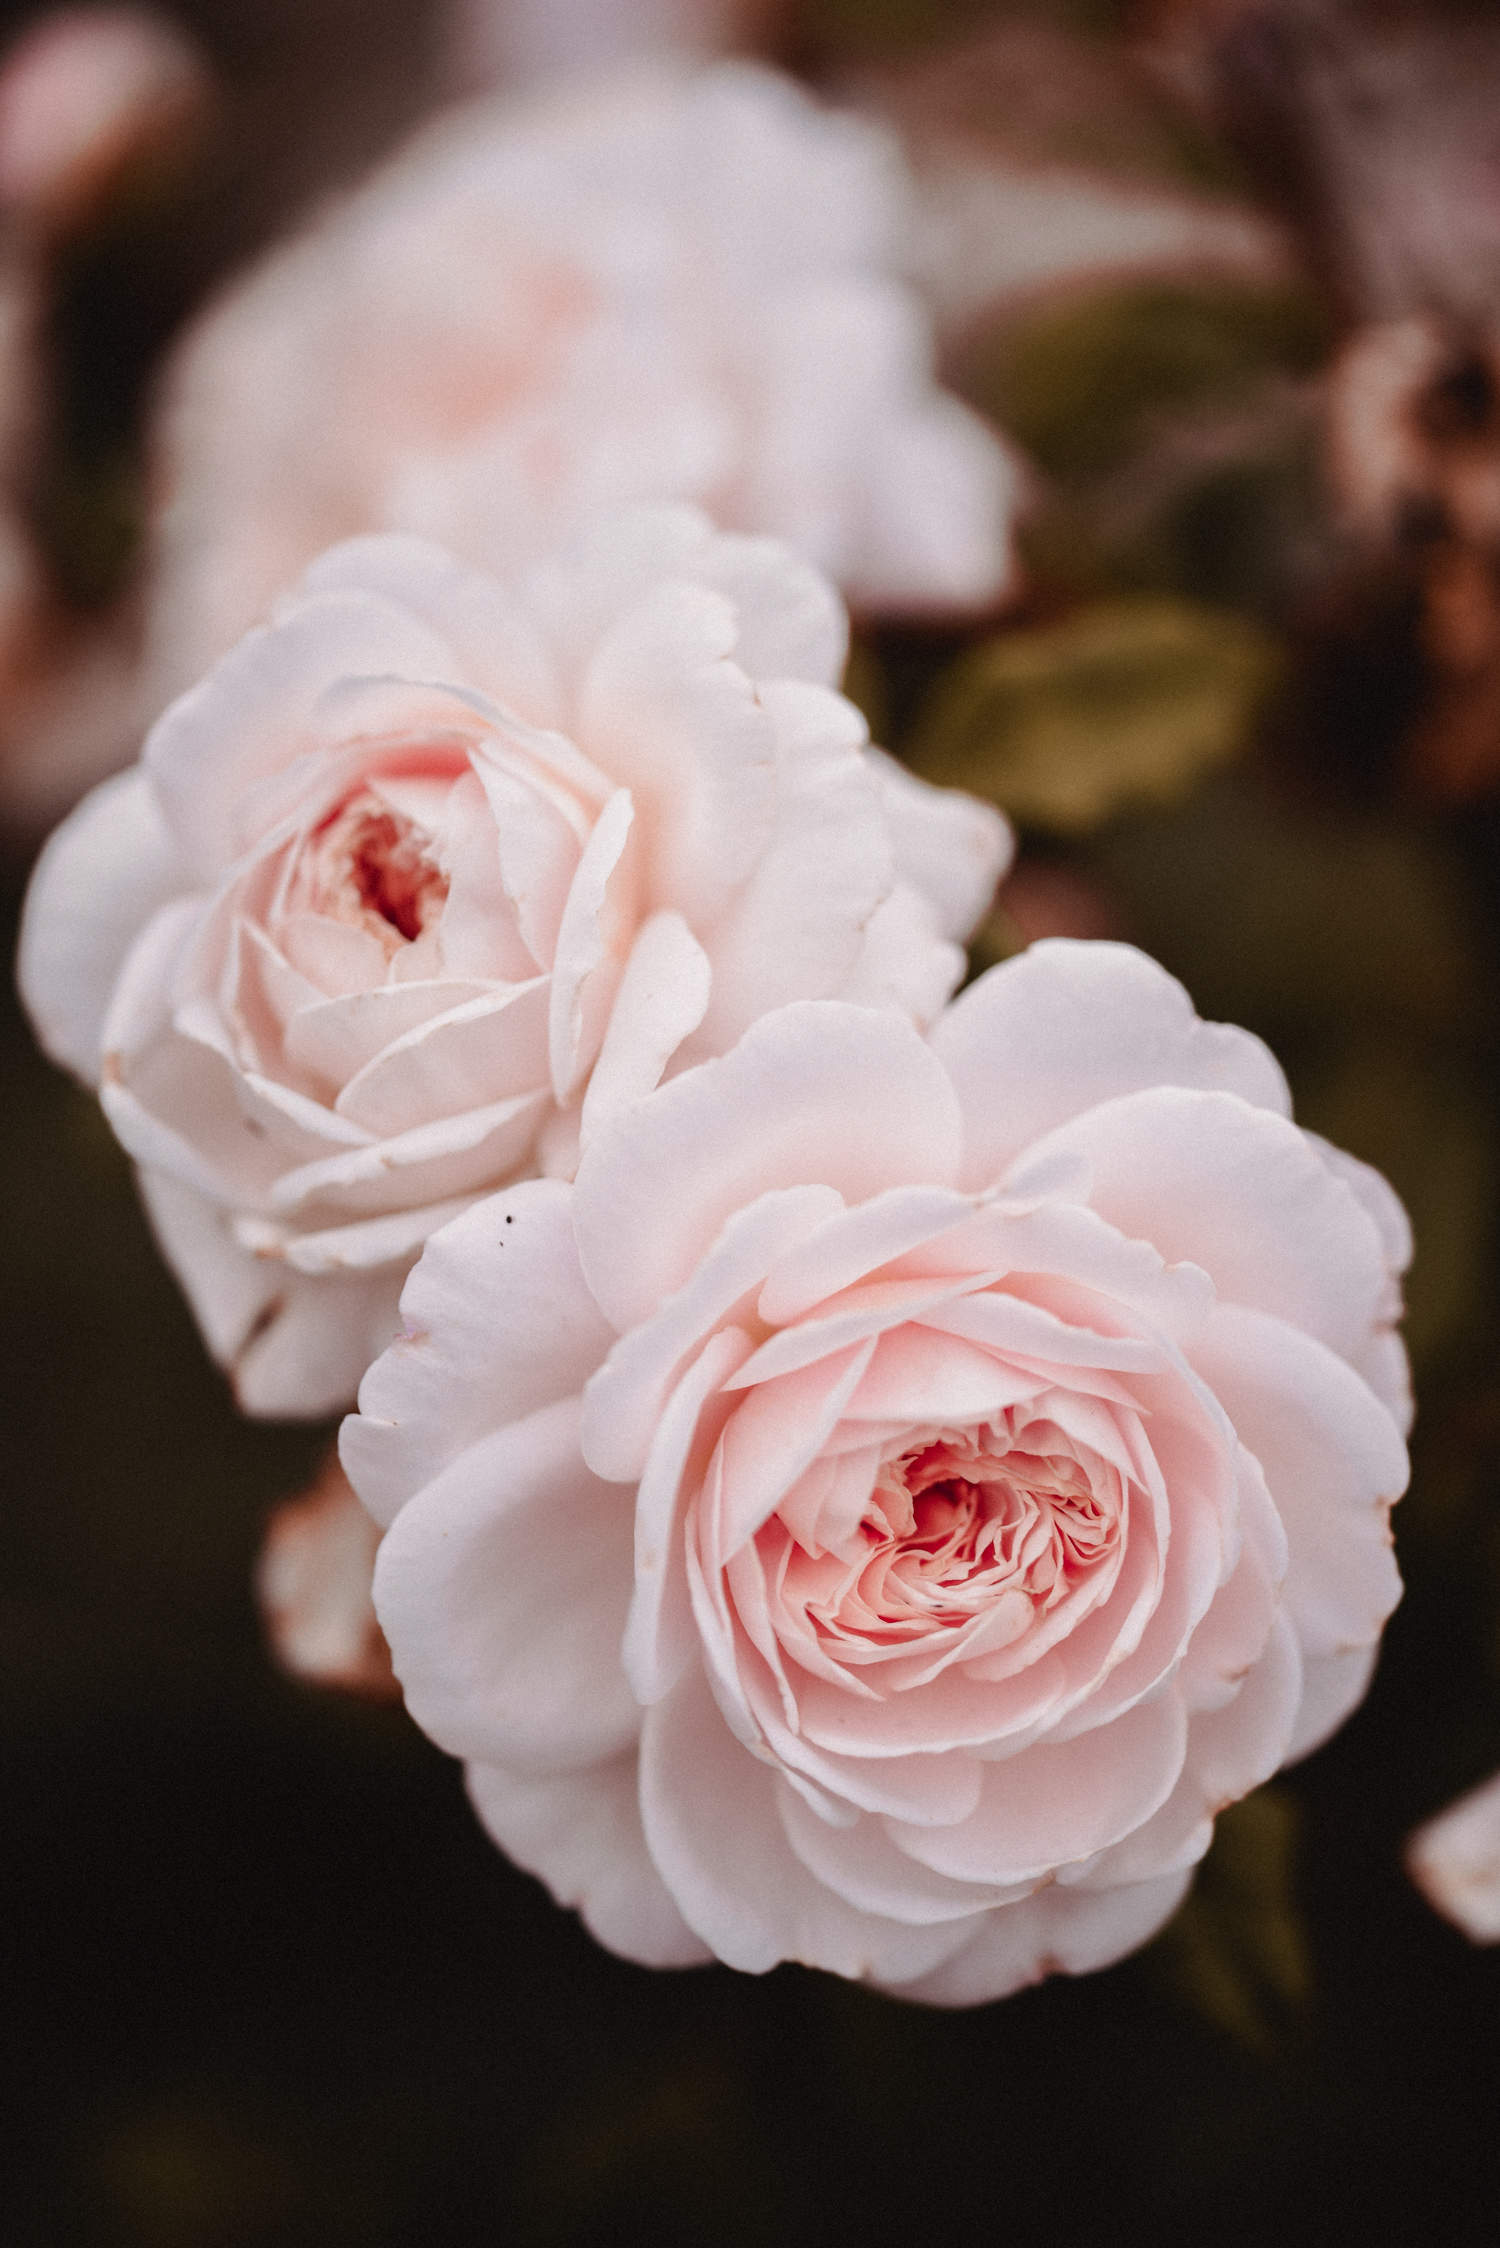 Claire-Minuit-Rose-Moody.jpg